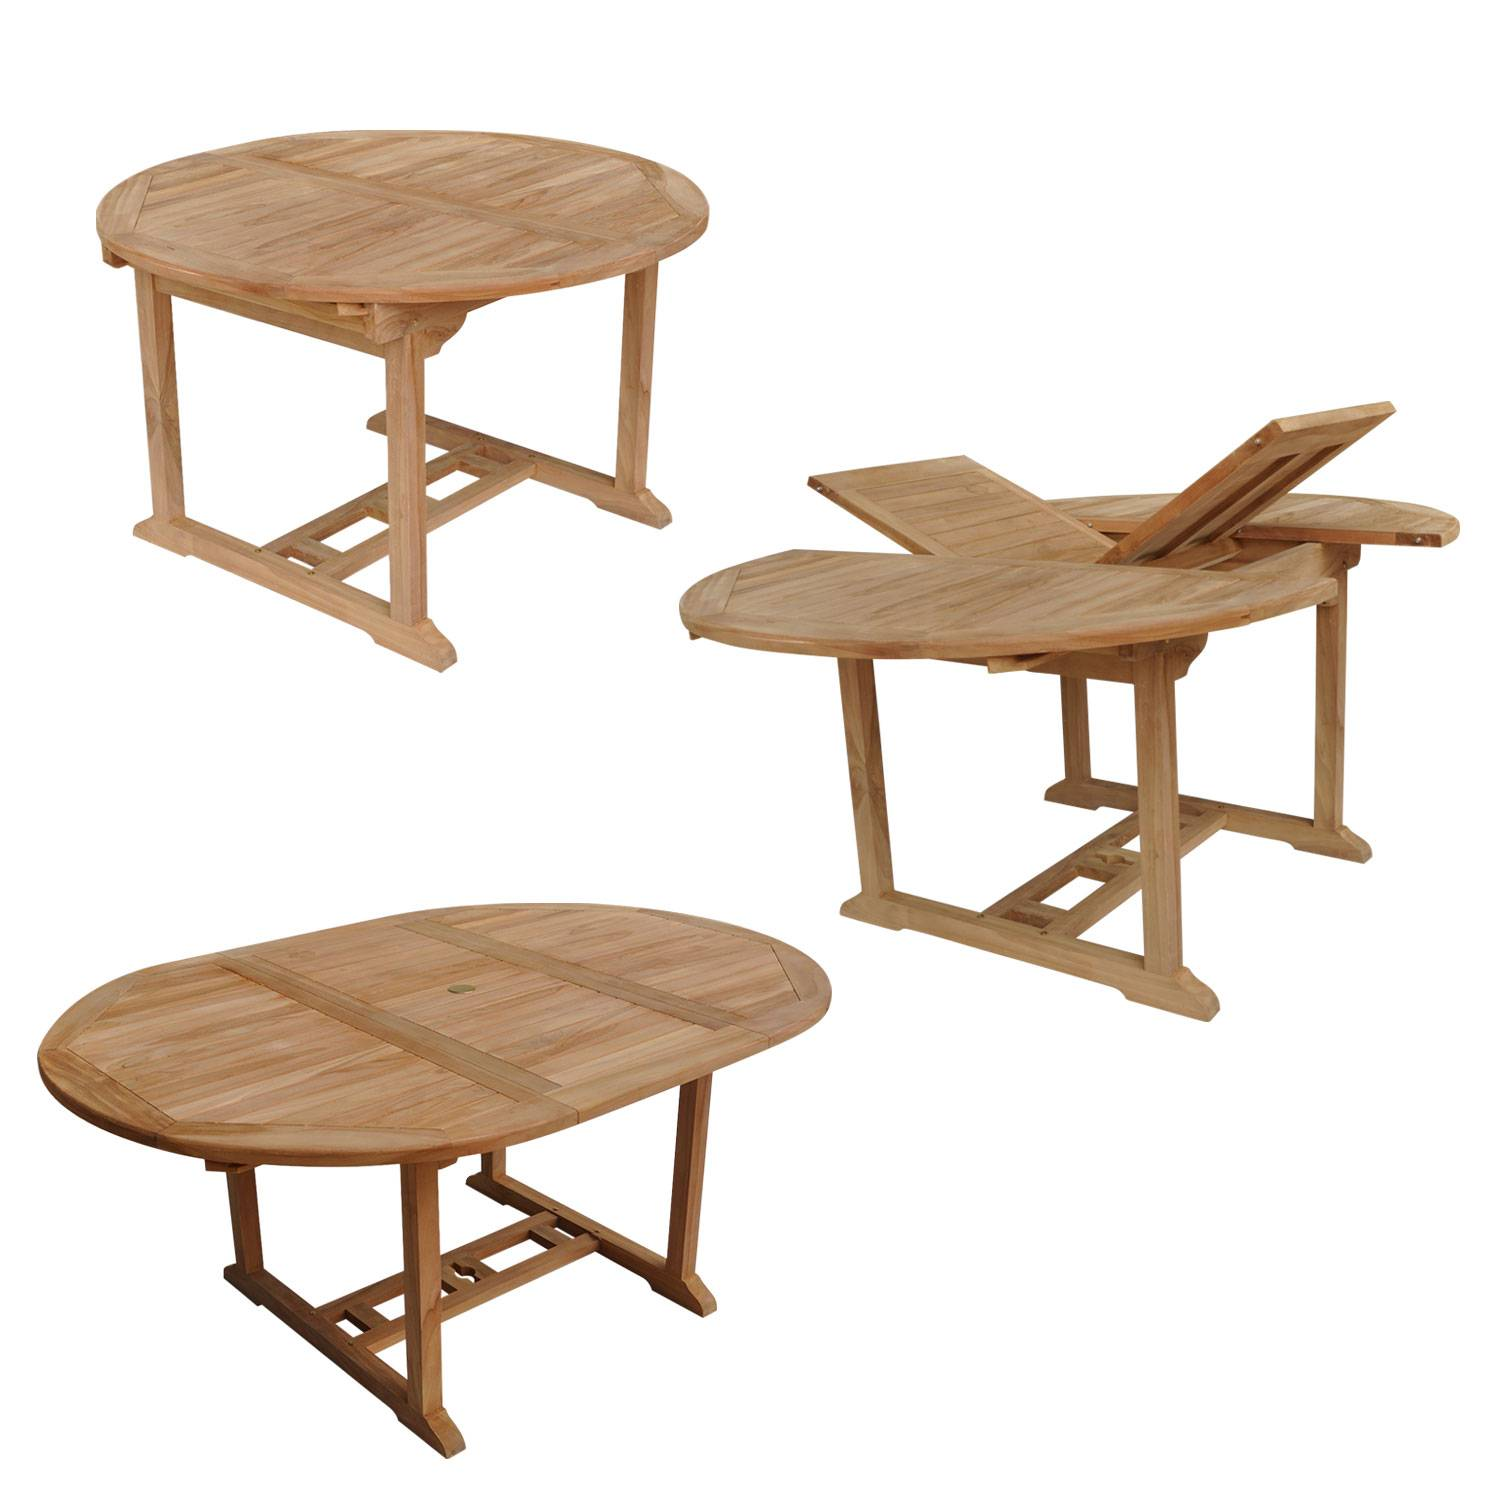 Salon de jardin LOMBOK - table extensible ronde en teck - 6 places